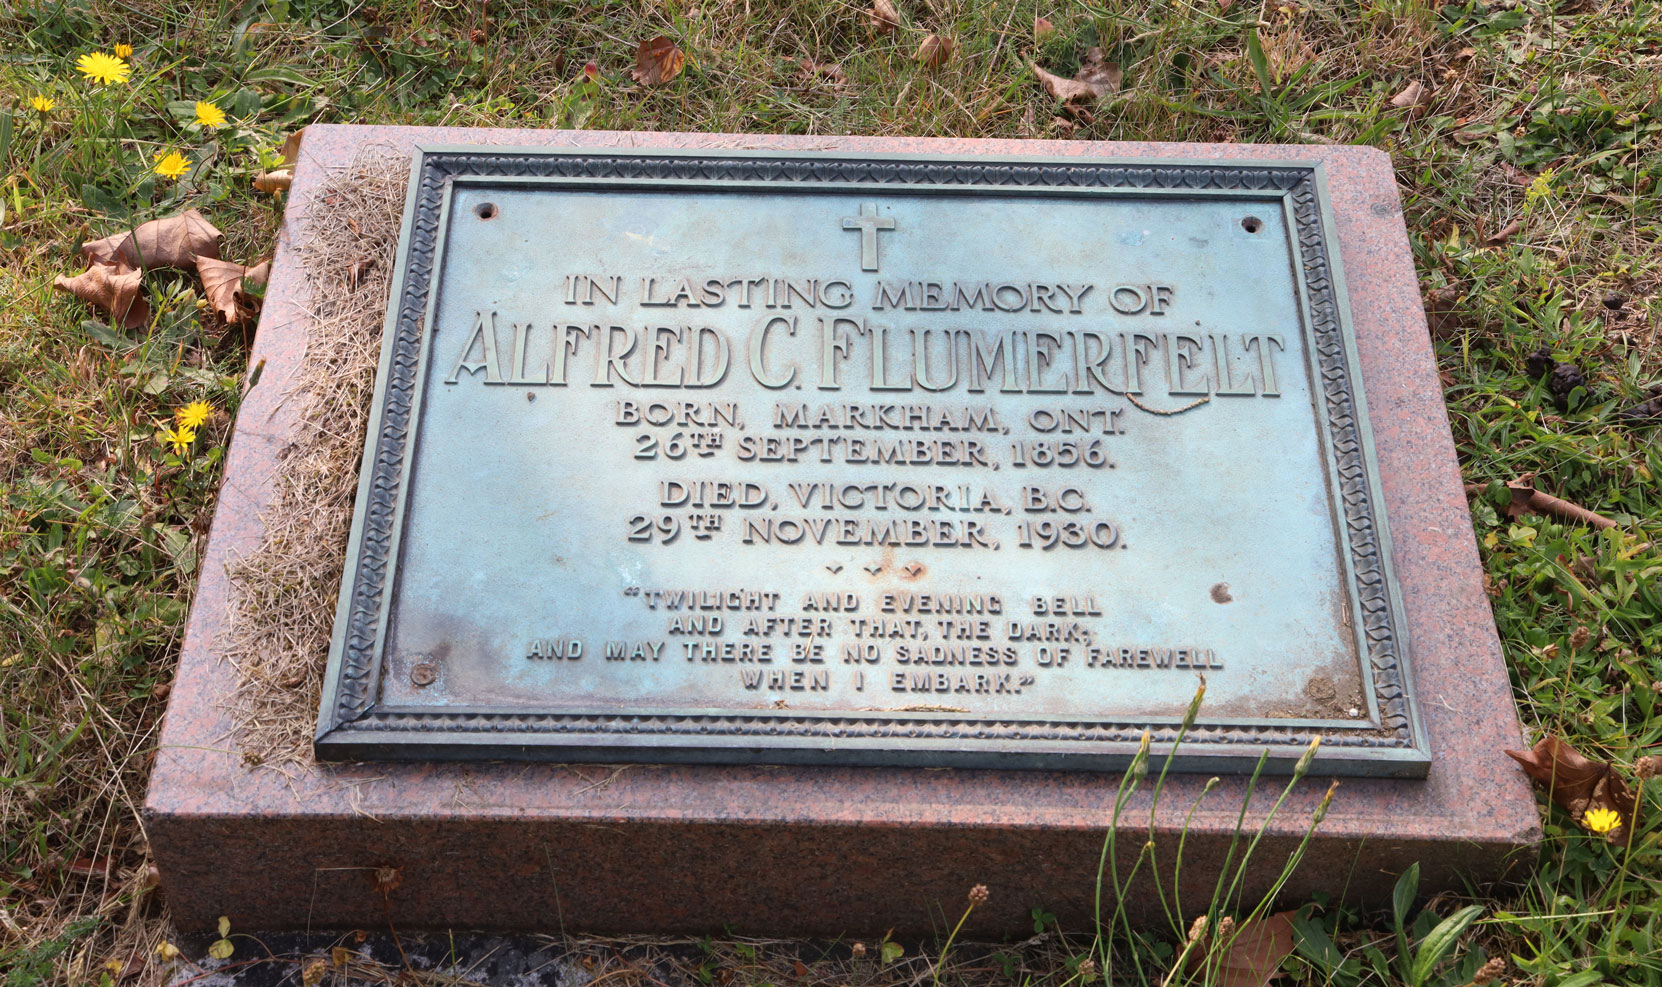 Alfred Cornelius Flumerfelt grave marker, Ross Bay Cemetery, Victoria, BC (photo by Author)